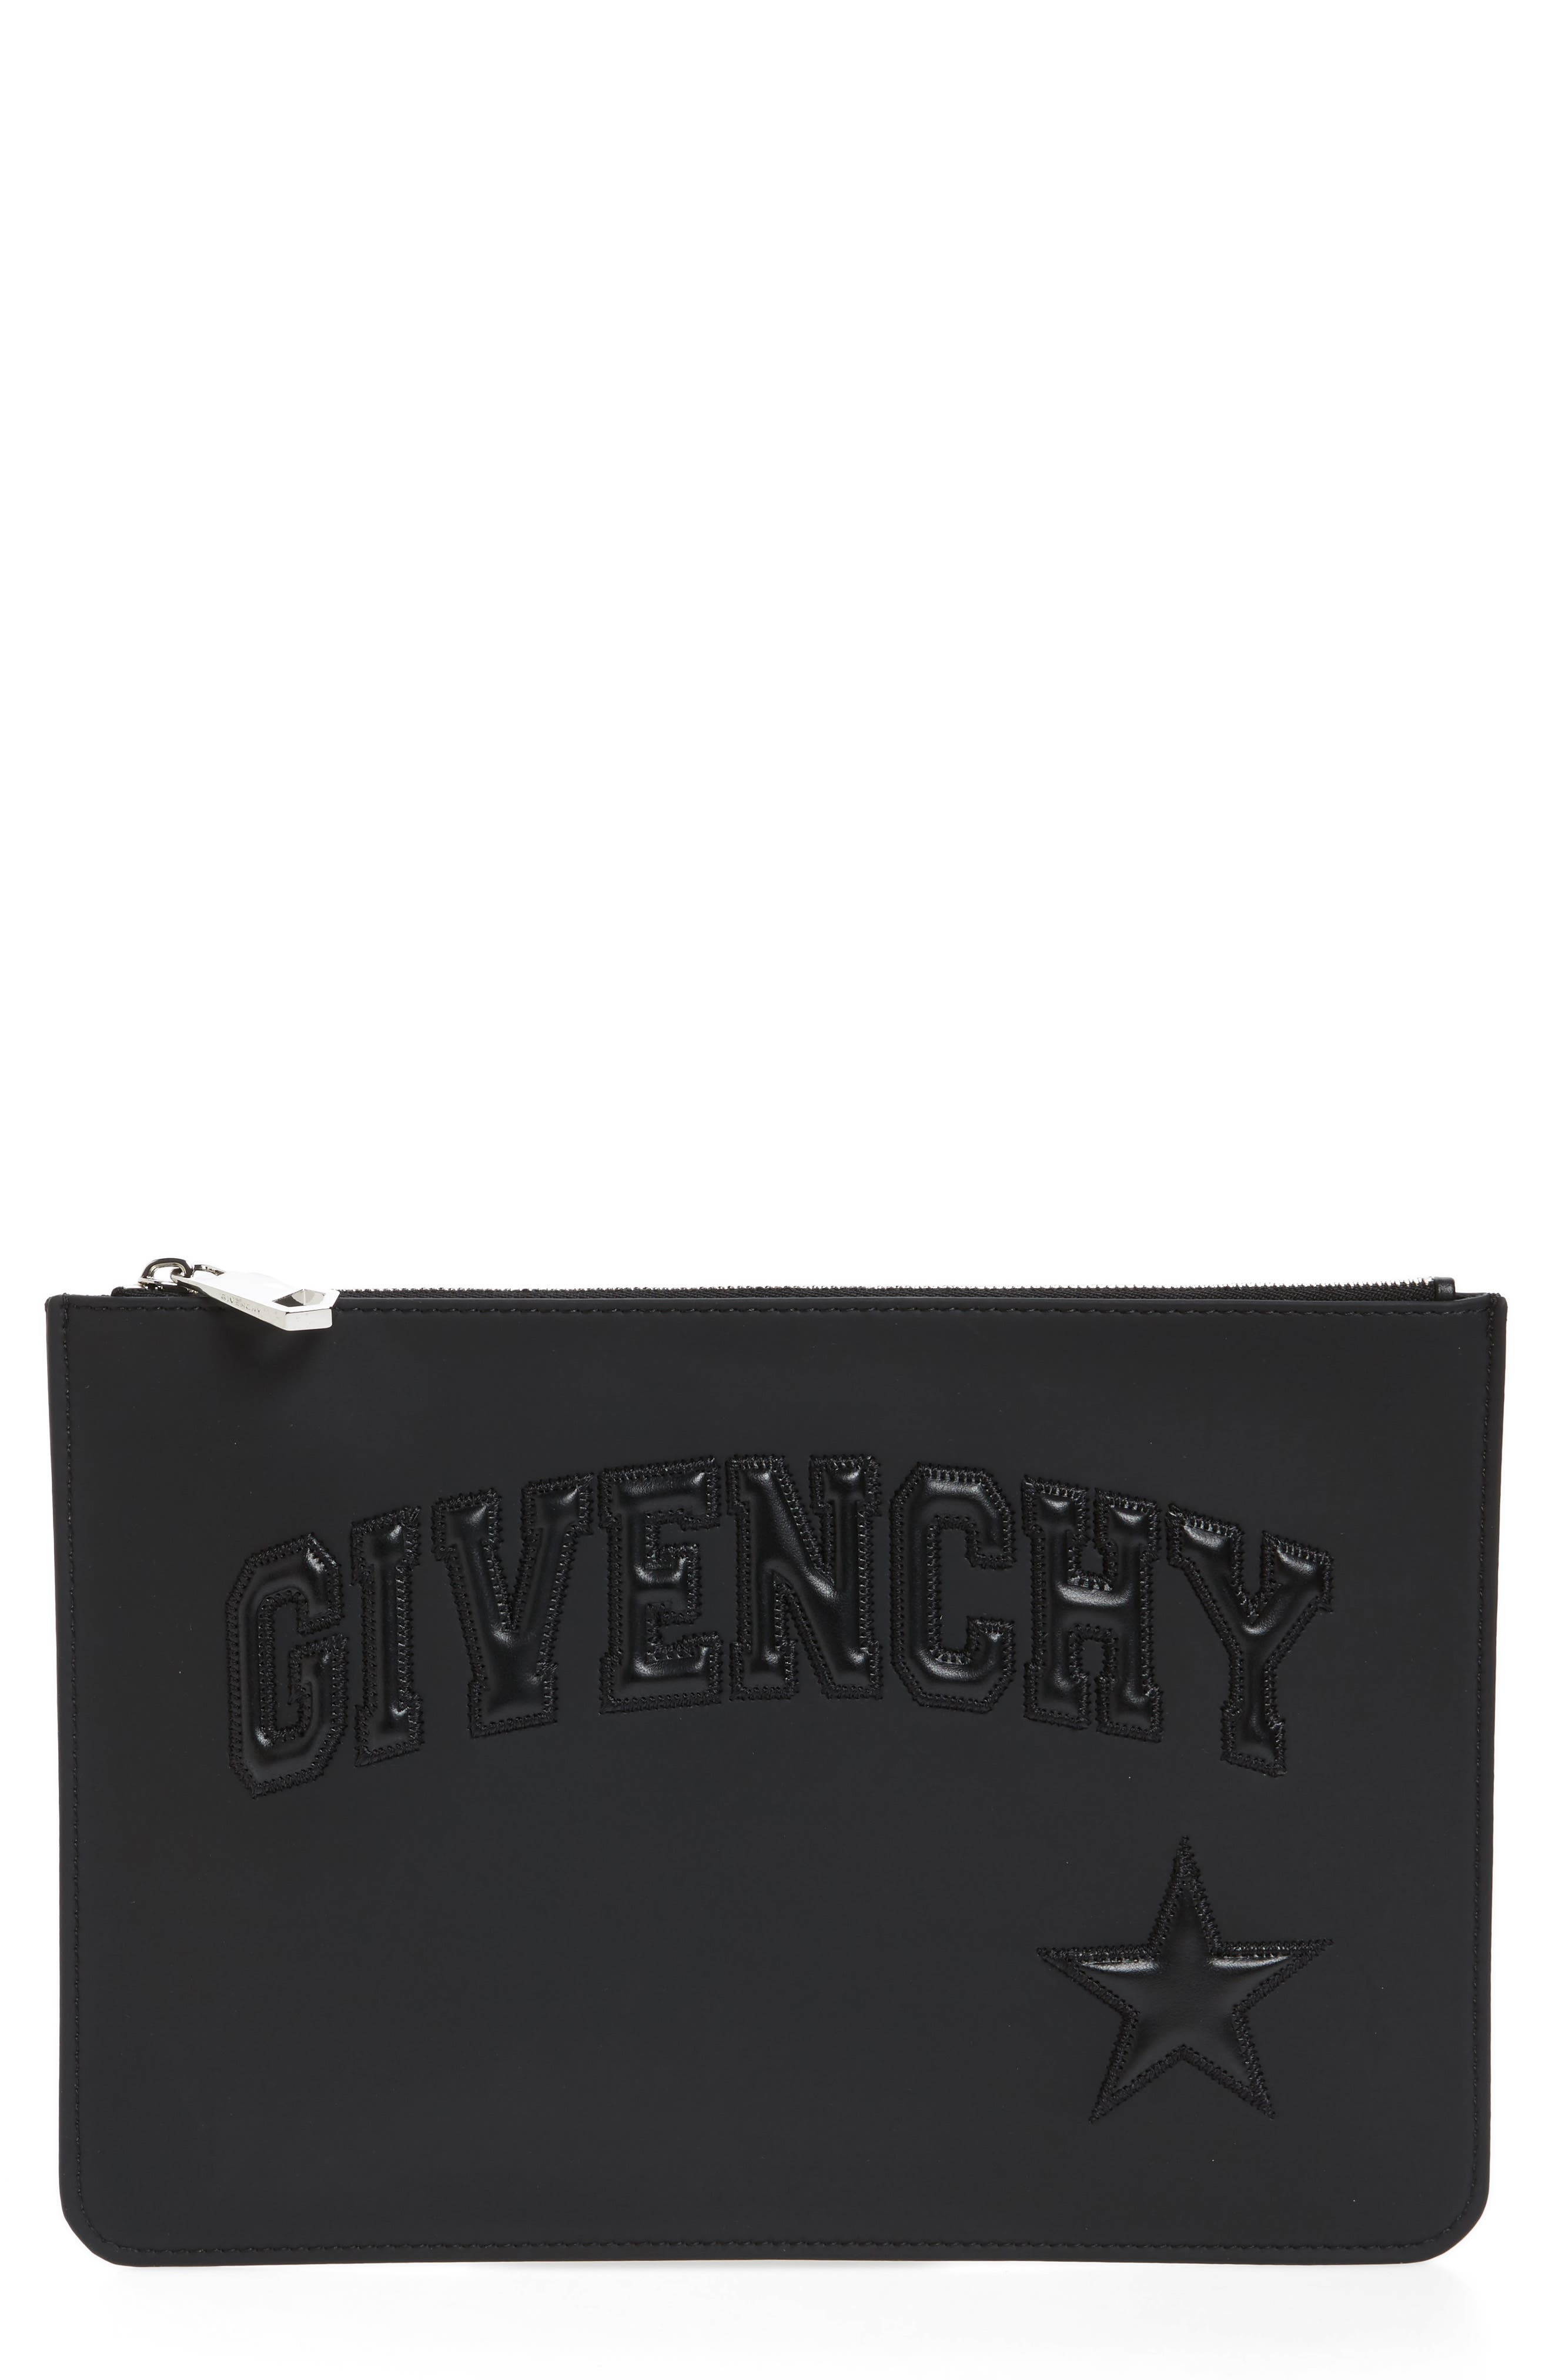 Alternate Image 1 Selected - Givenchy Medium Star Logo Pouch